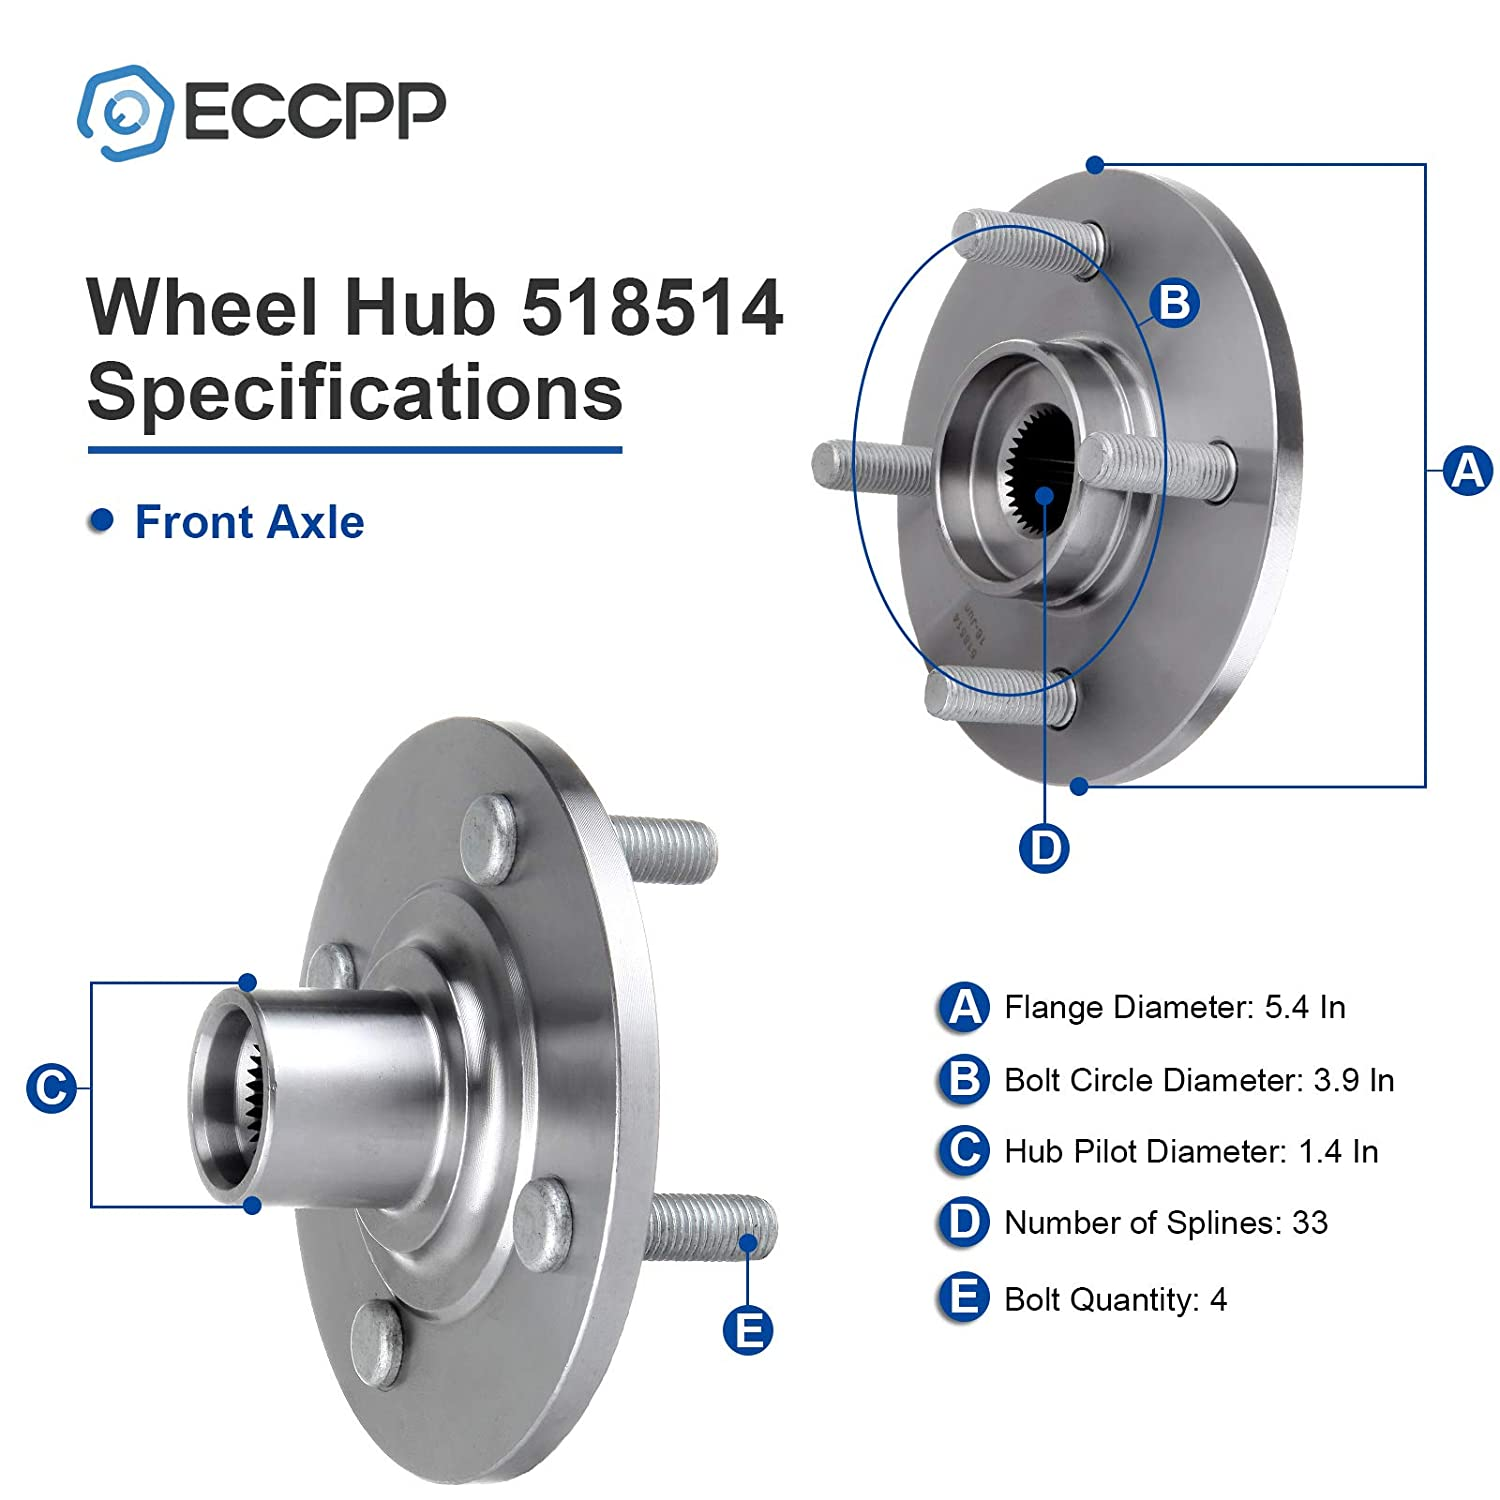 ECCPP Wheel Hub Bearing Assembly 4 Lugs for 1994 1995 1996 1997 1998 1999 2000 2001 2002 Saturn SC1 SC2 SL SL1 SL2 SW1 SW2 Axle Bearing and Hub Assembly Compatible with 518514